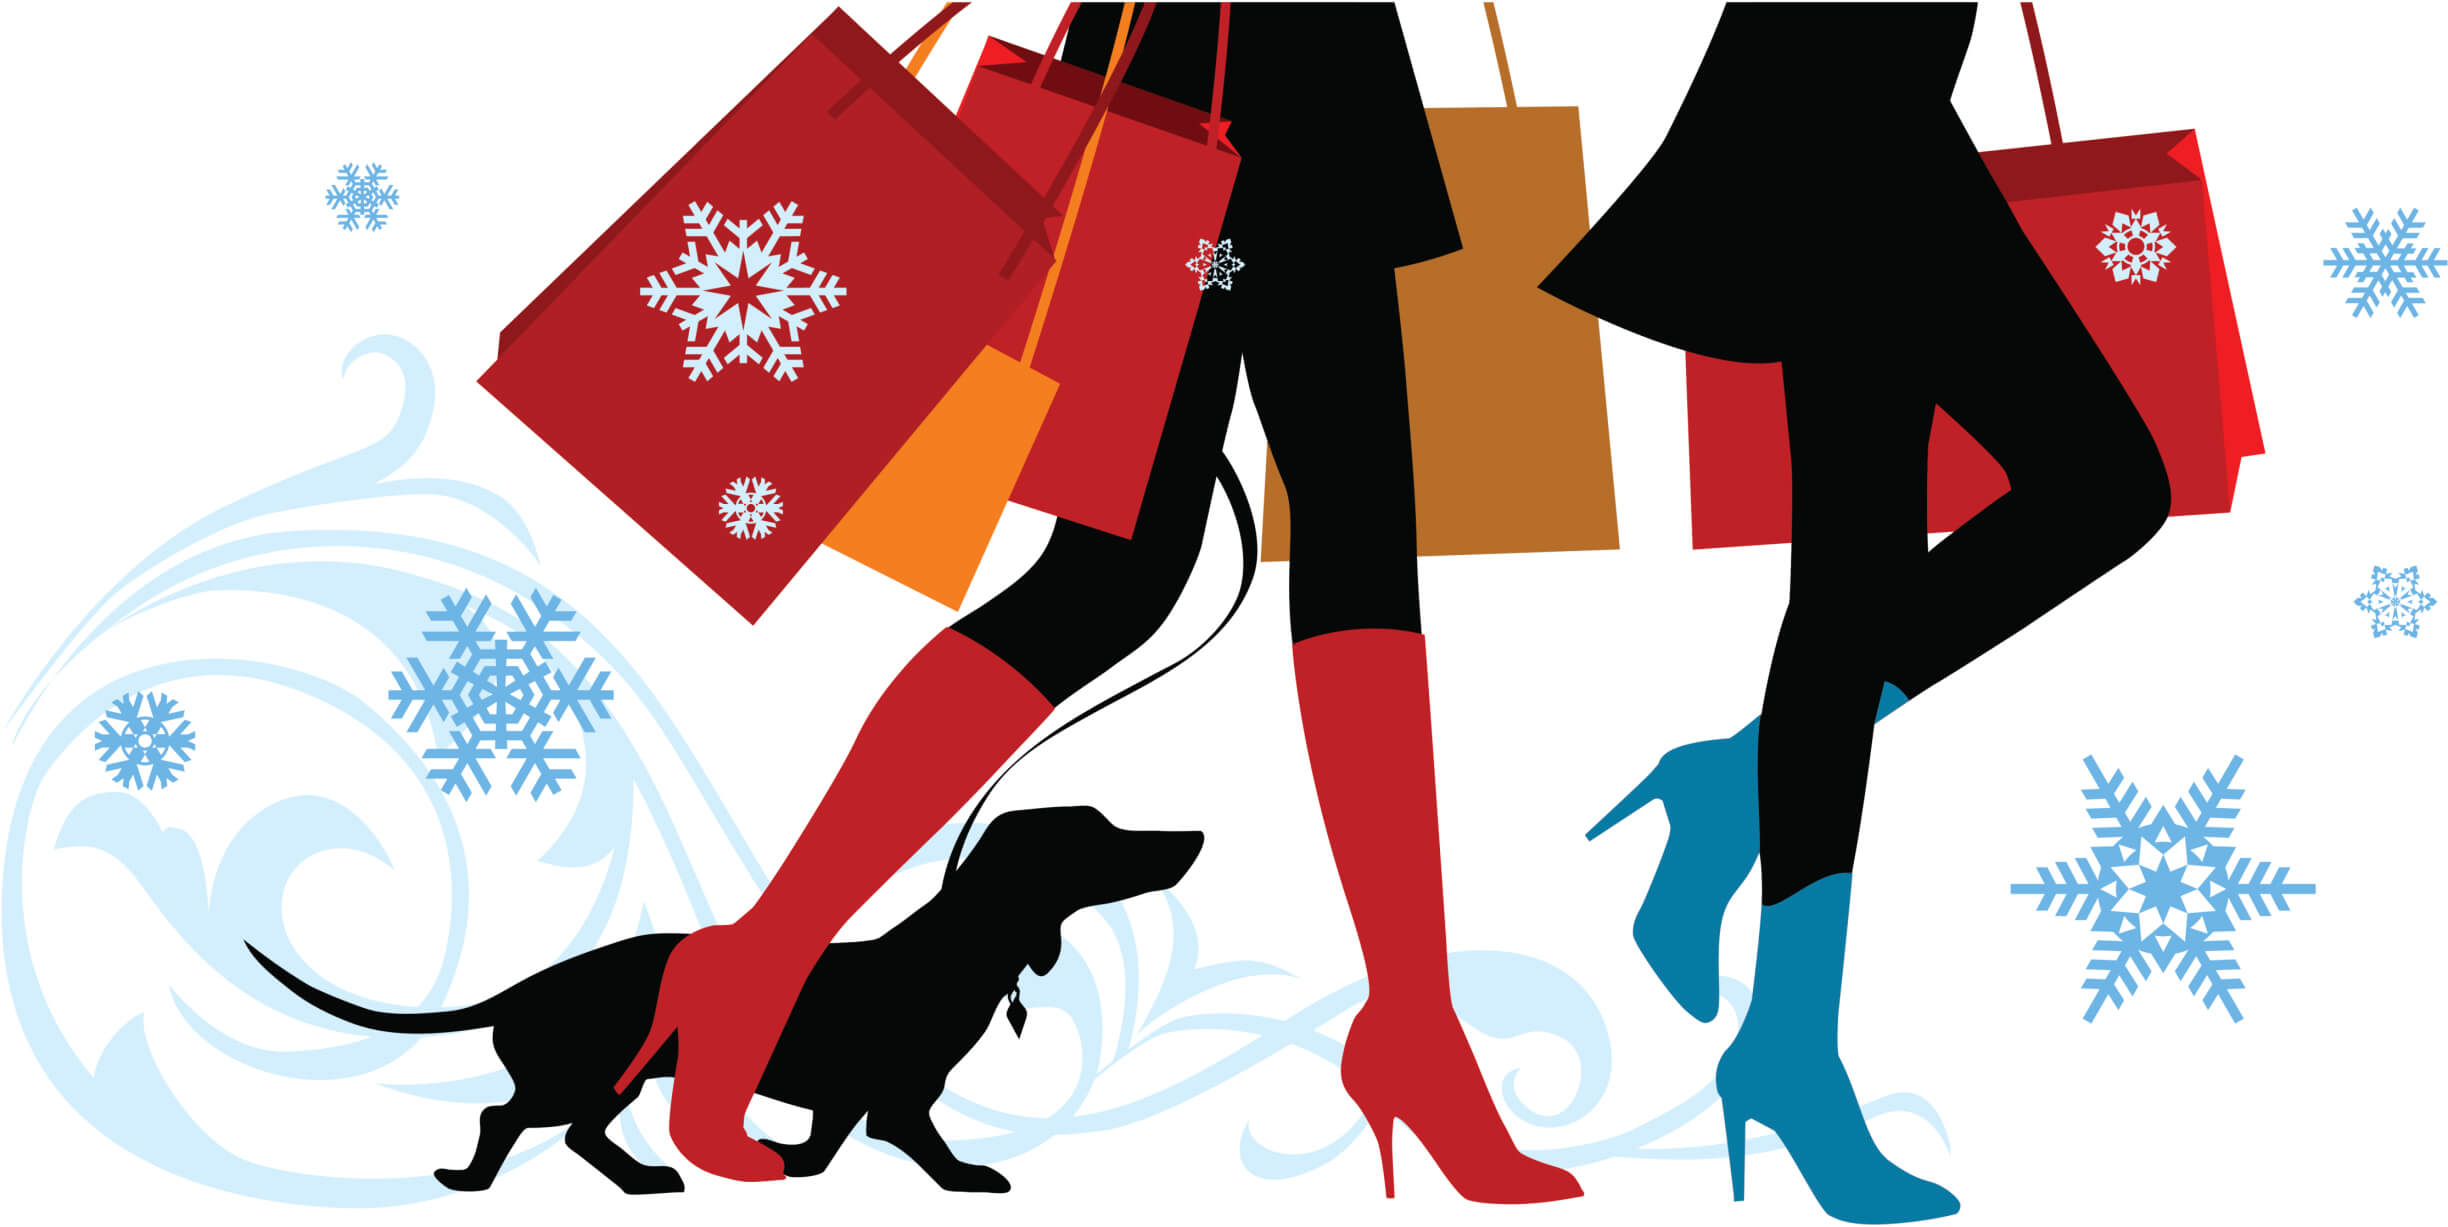 b01f0d15fc The Holiday Season has arrived, and as a merchant and a consumer, you're  more than likely feeling the pressure of the looming, and hopefully  prosperous, ...